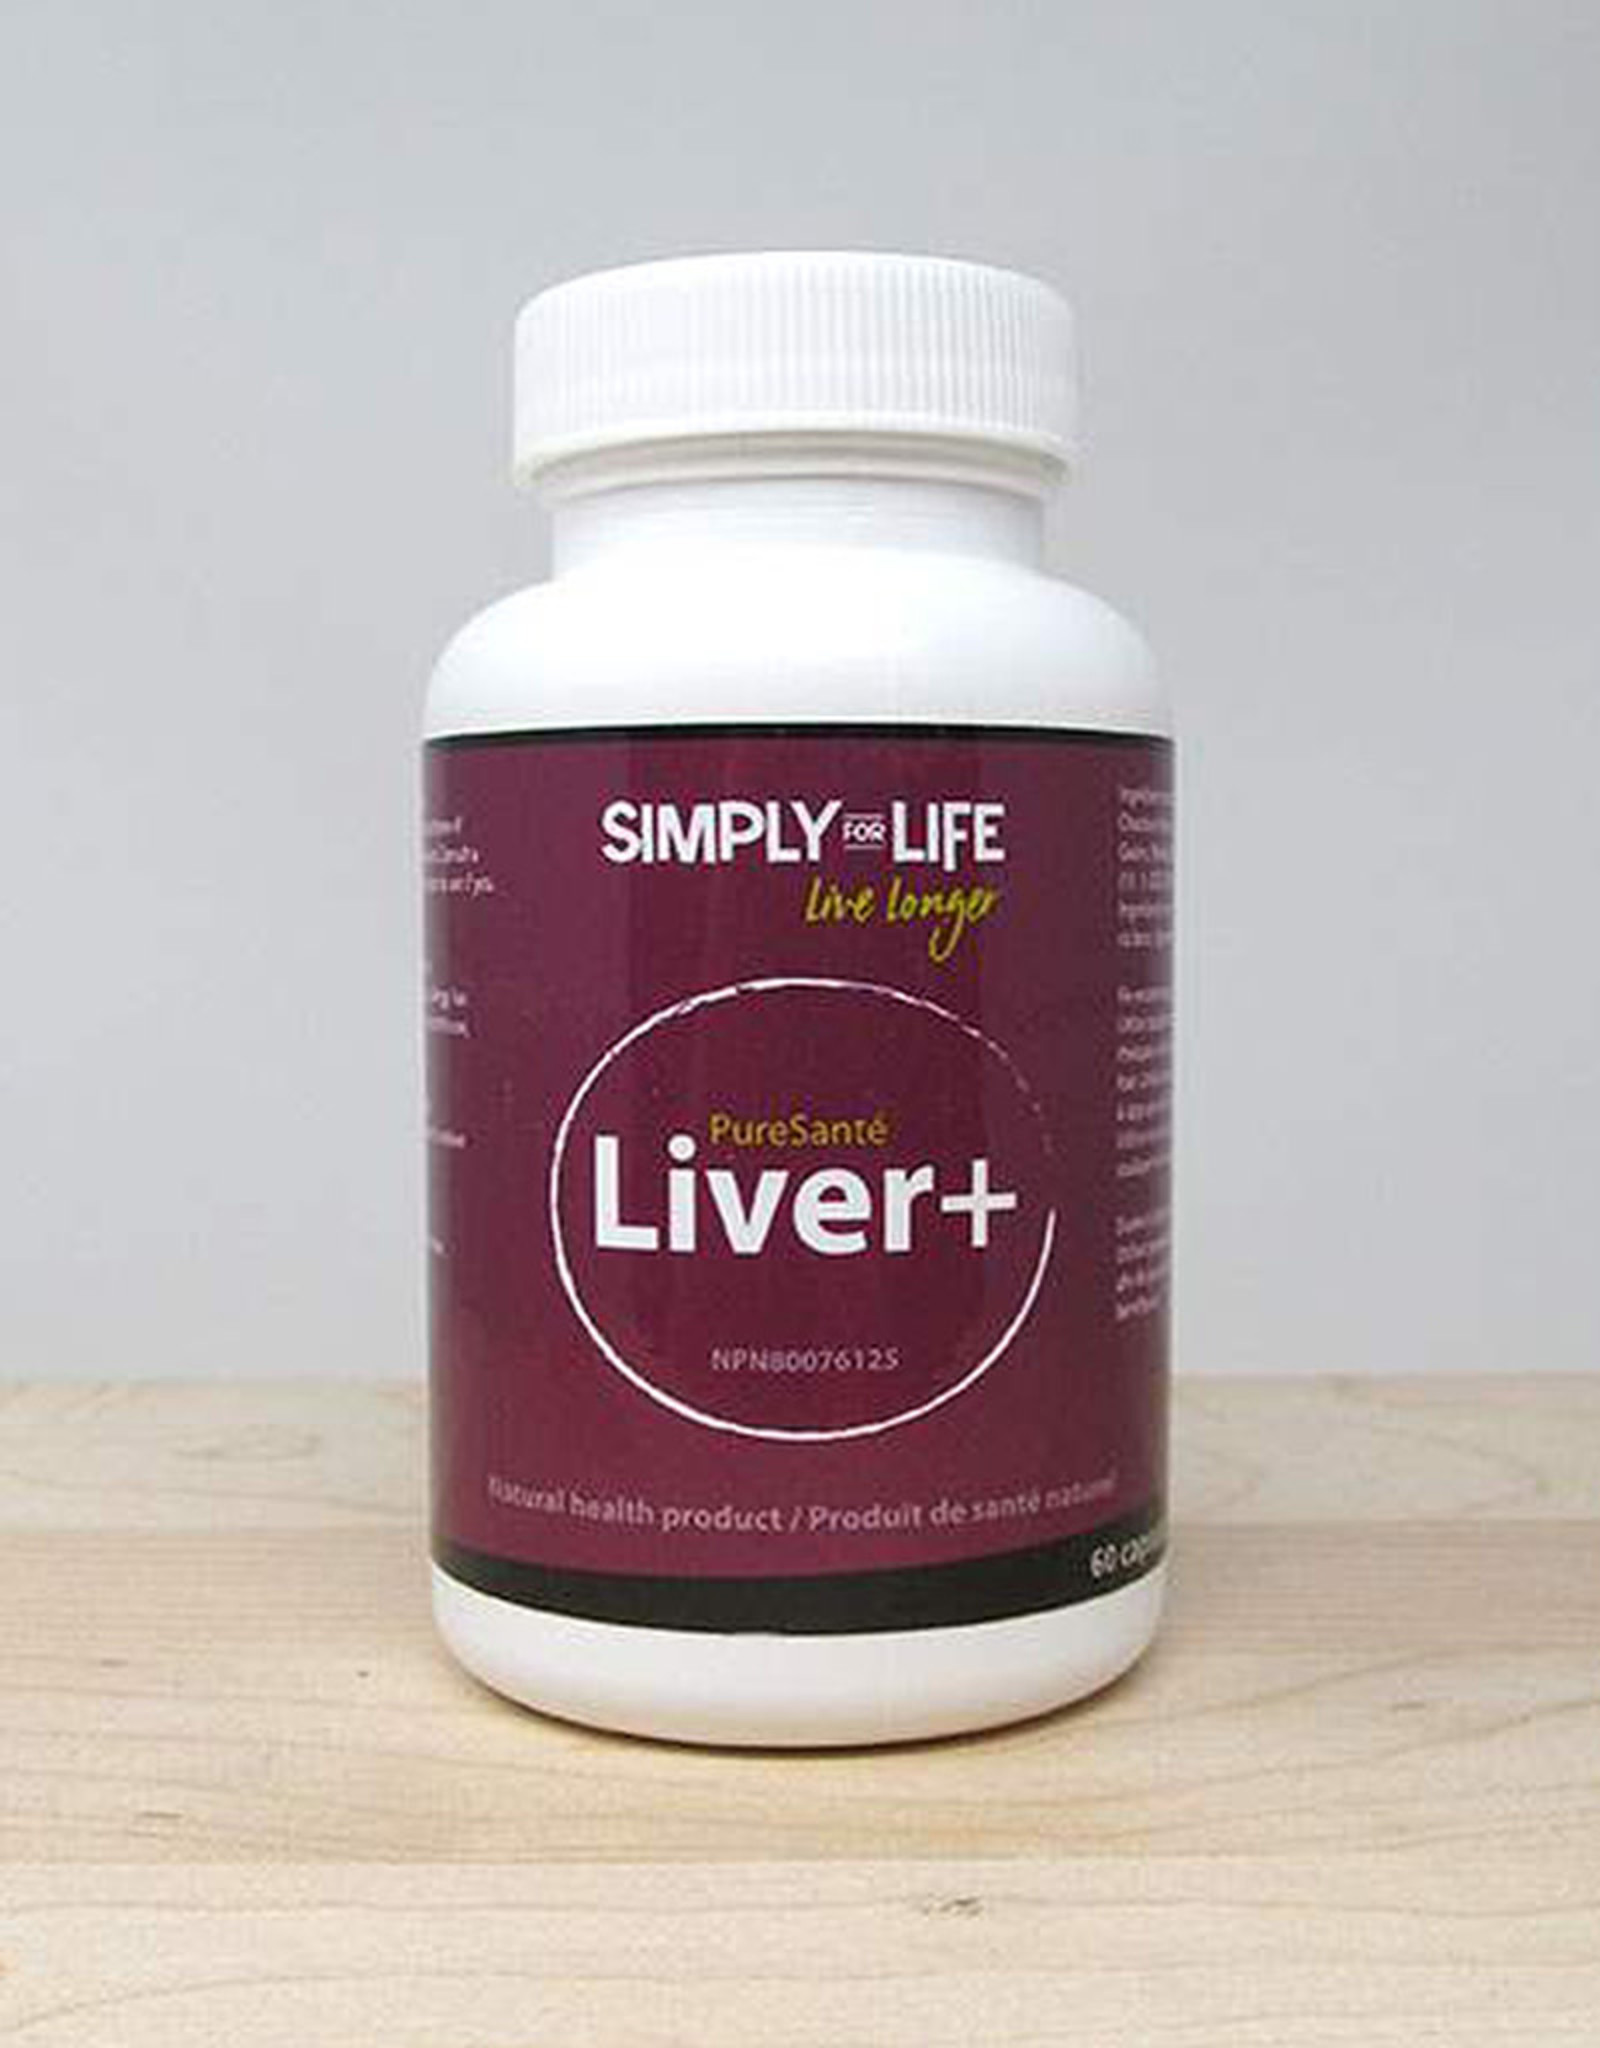 Simply For Life Simply For Life - Suppléments, Liver+ (60cap)